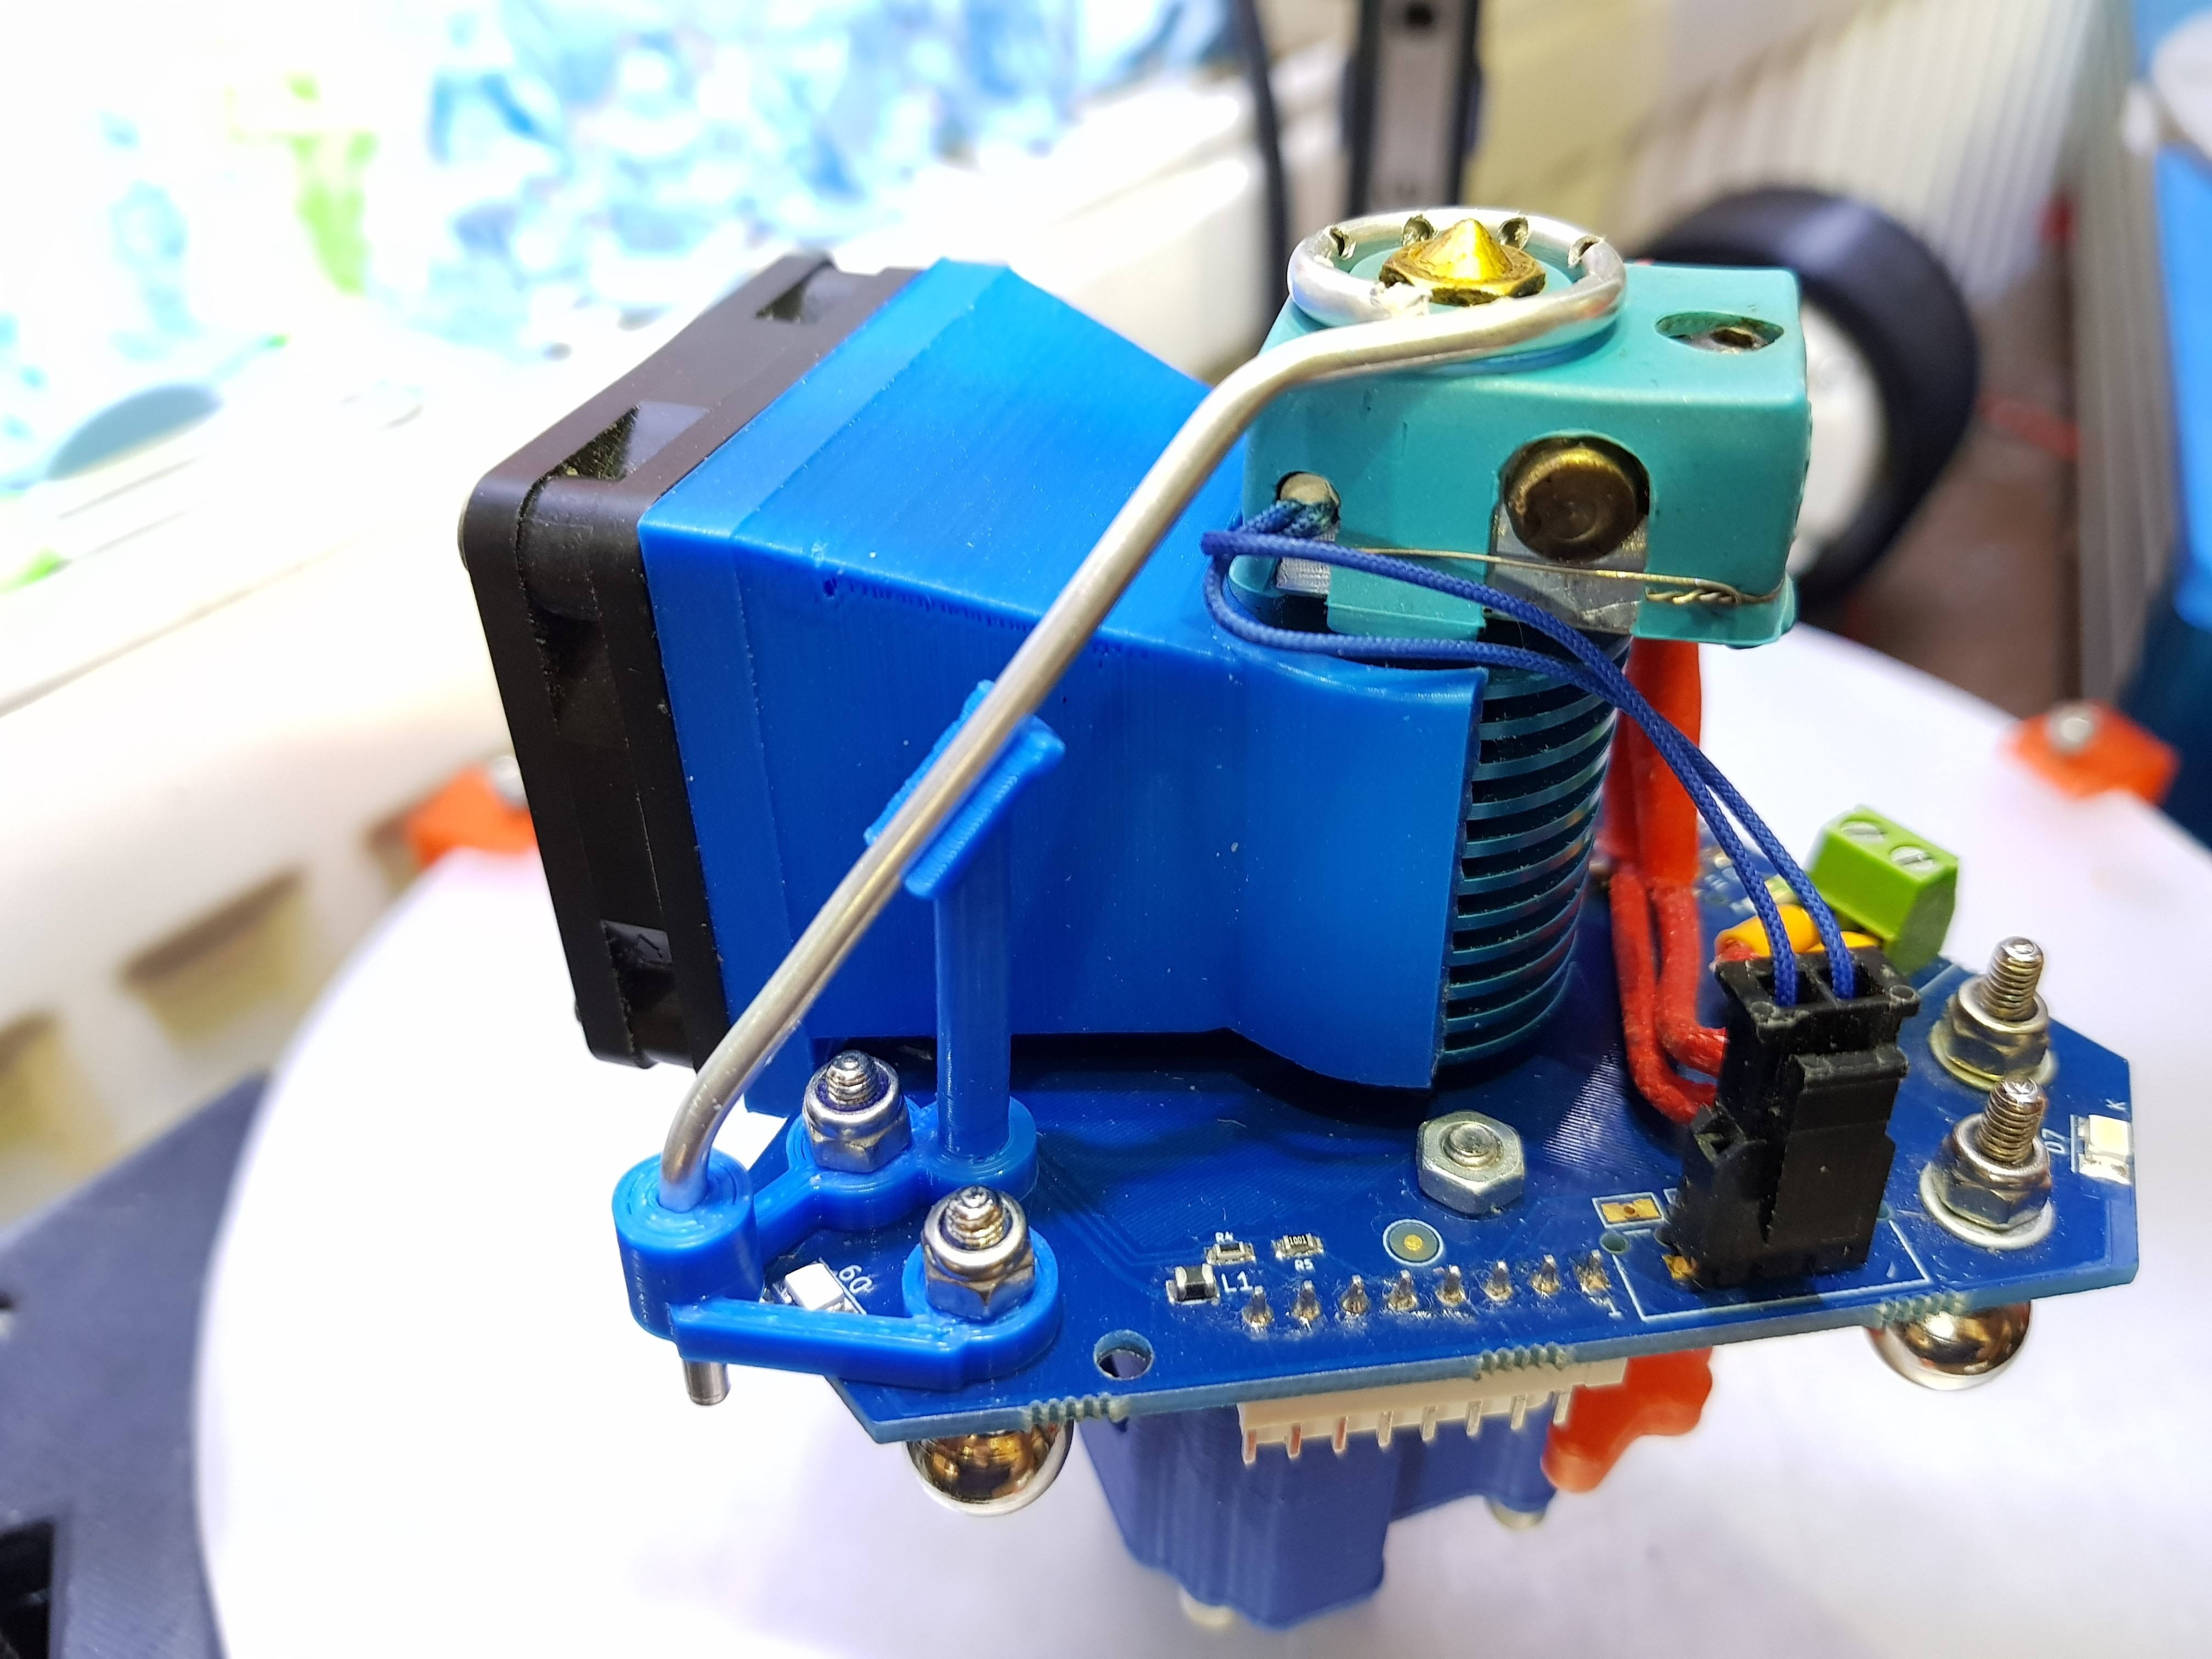 20180811_115127.jpg Download free STL file Berd Air Tube Supprt For Smart Effector • Object to 3D print, gaza07